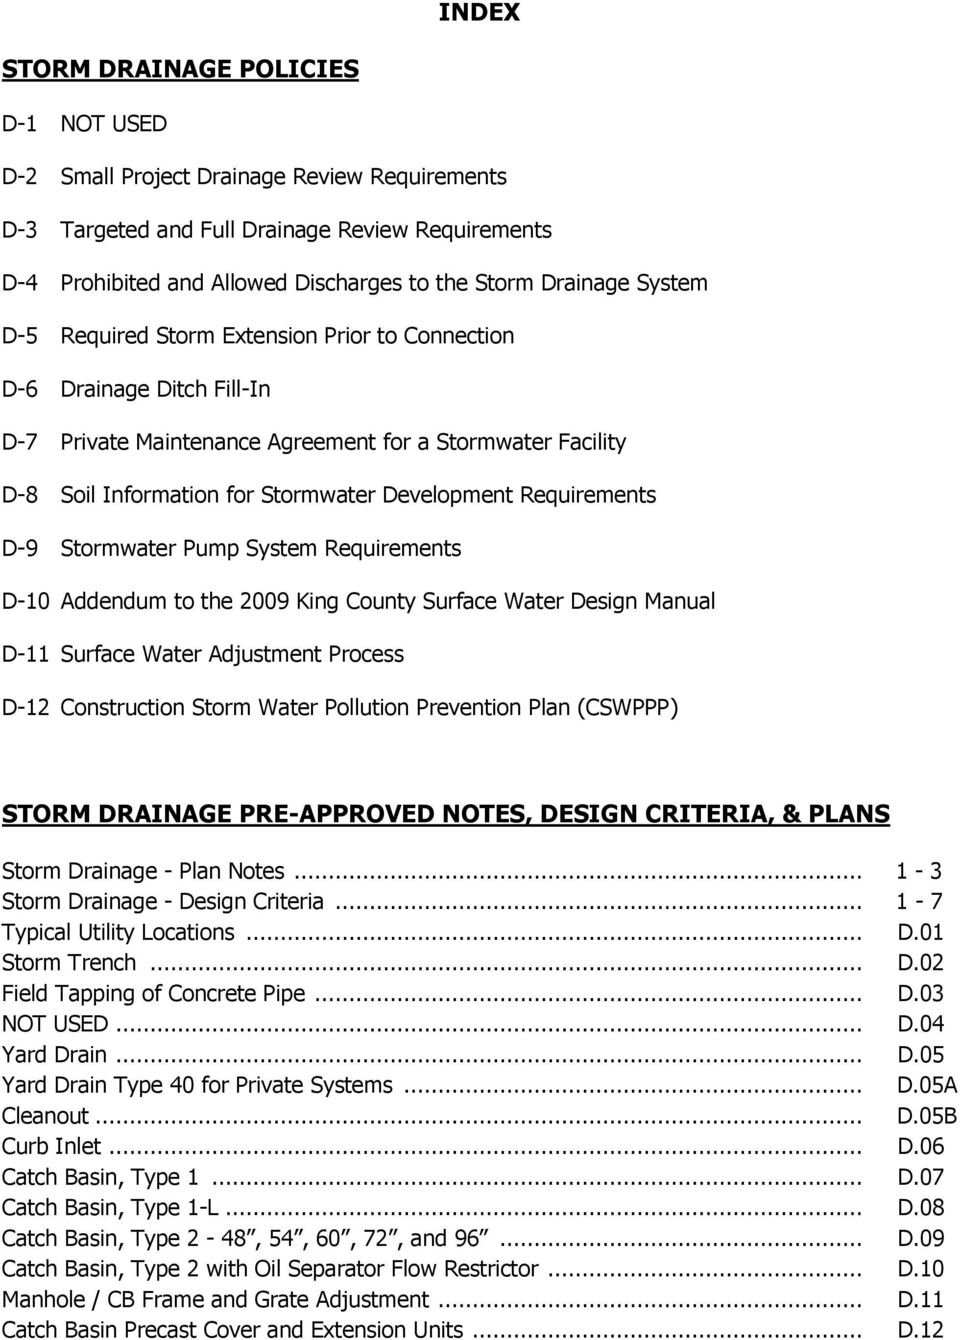 Index Storm Drainage Pre Approved Notes Design Criteria Plans Pdf